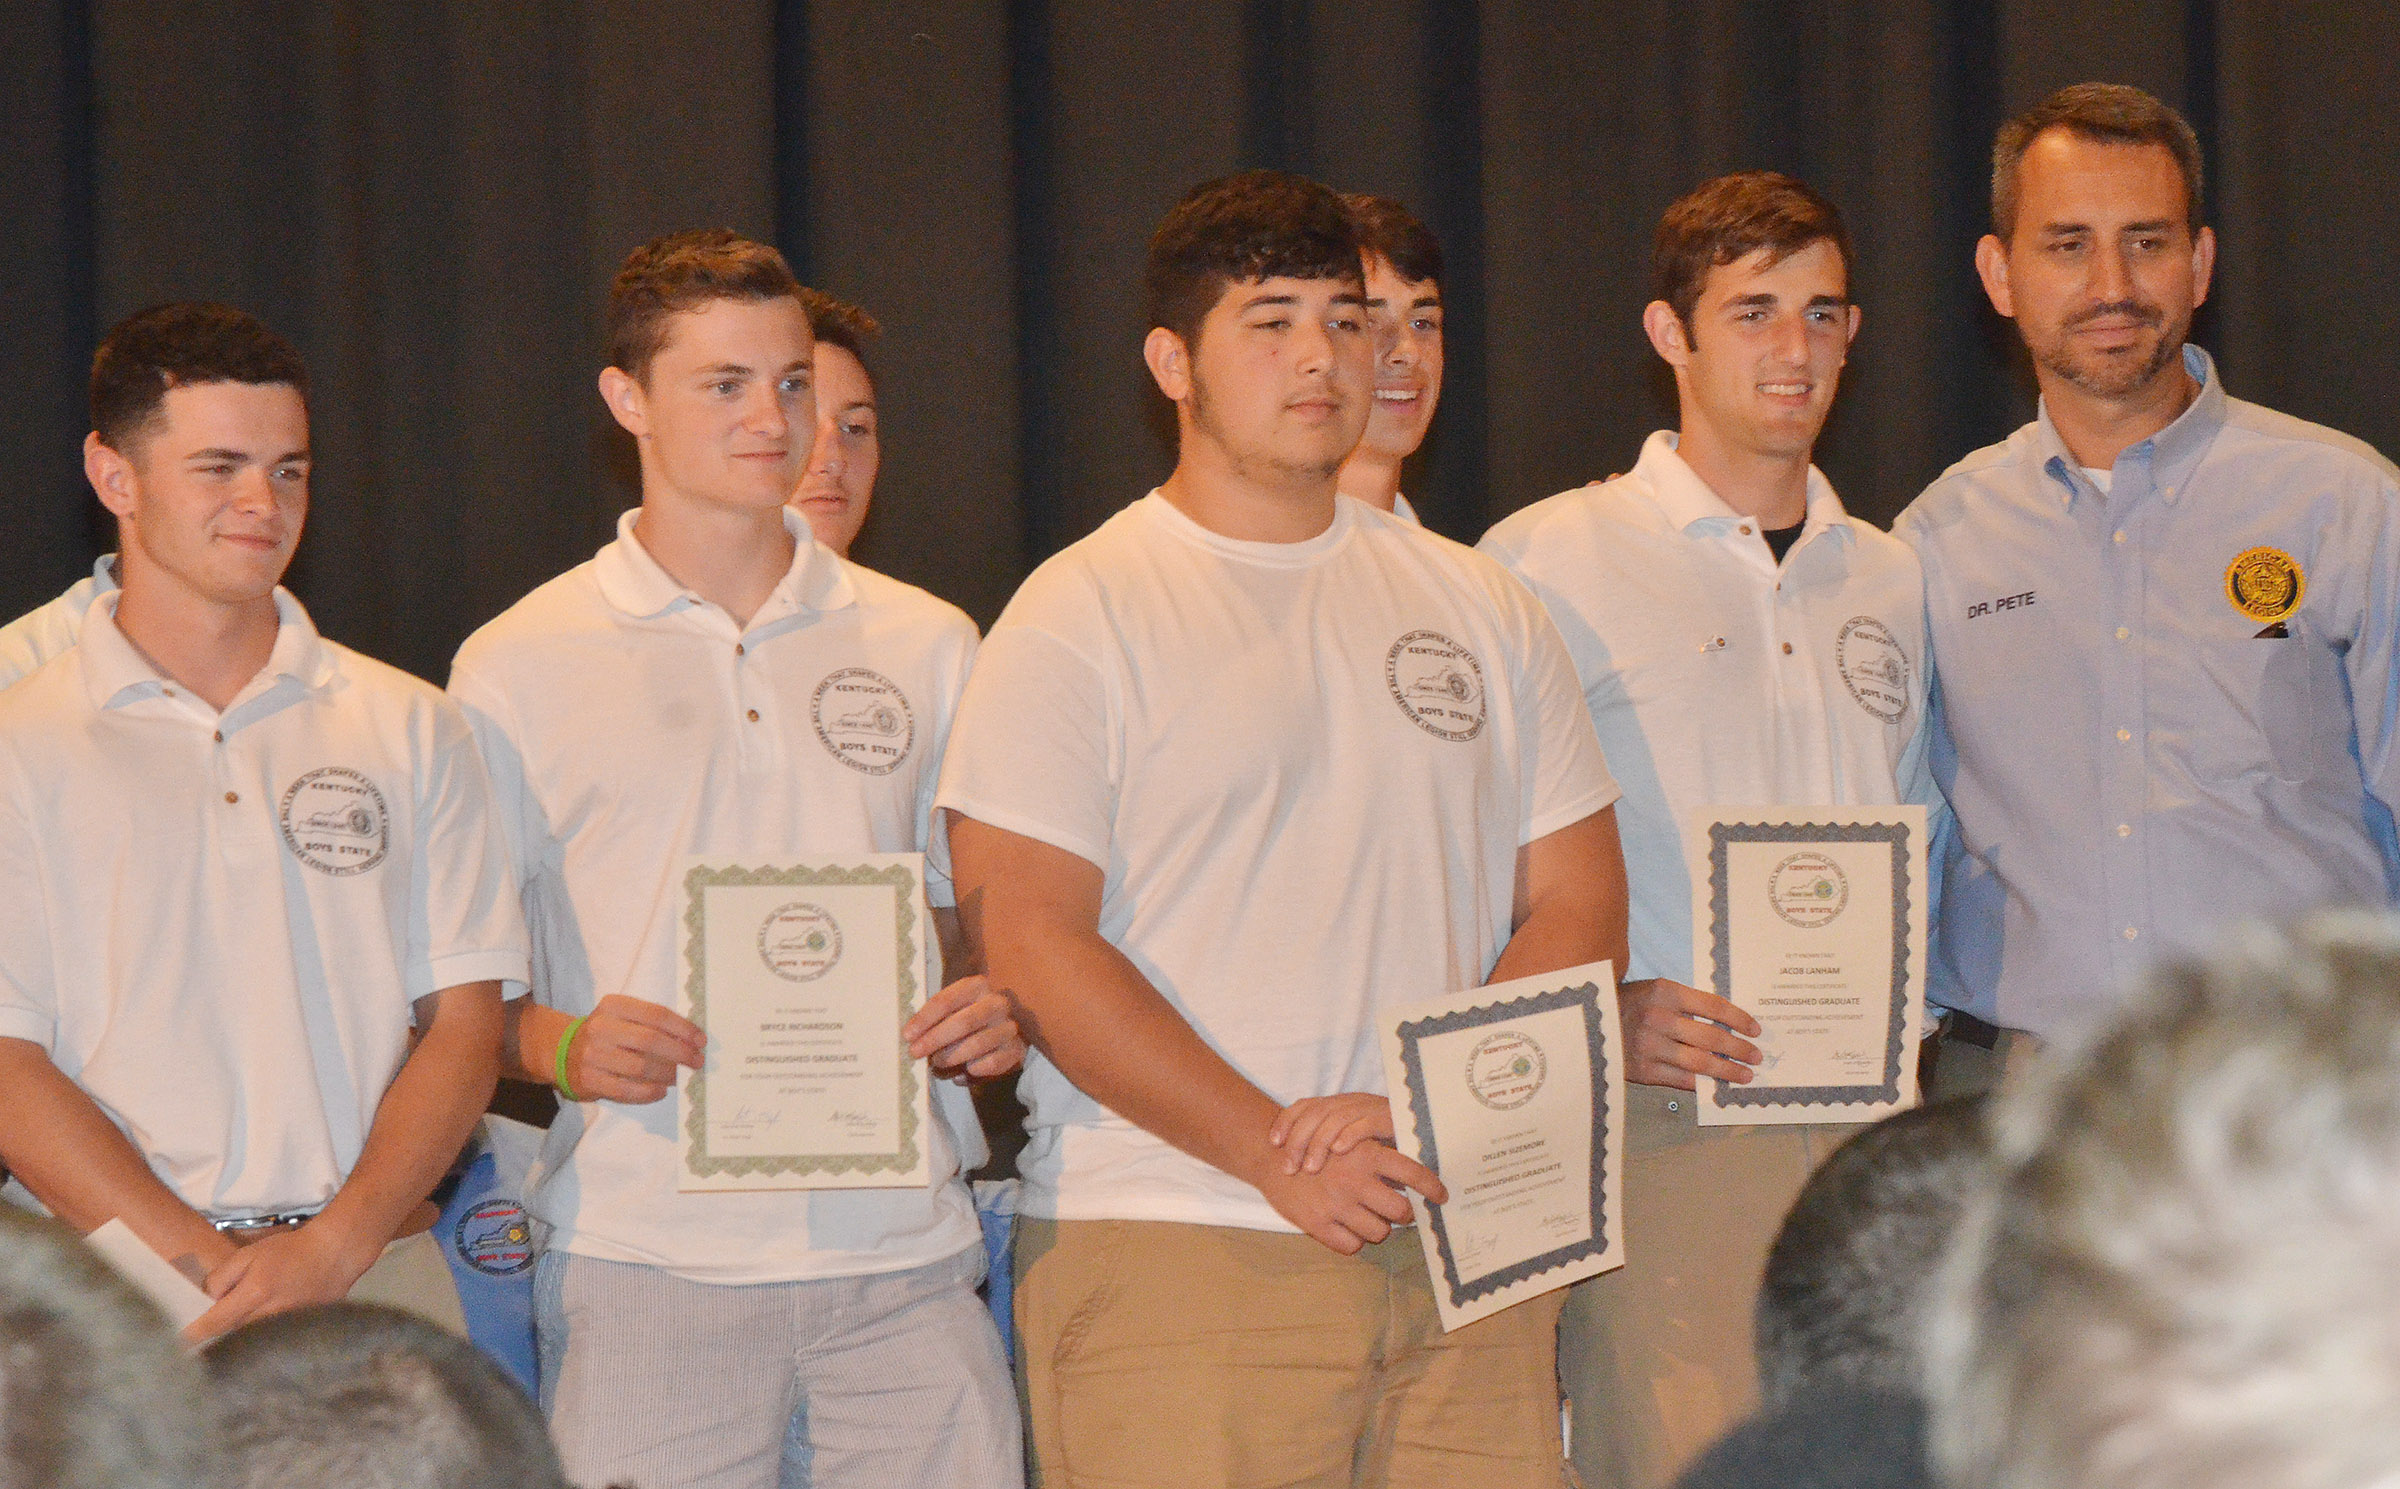 CHS senior Bryce Richardson, second from left, is honored at the Boys State graduation ceremony.